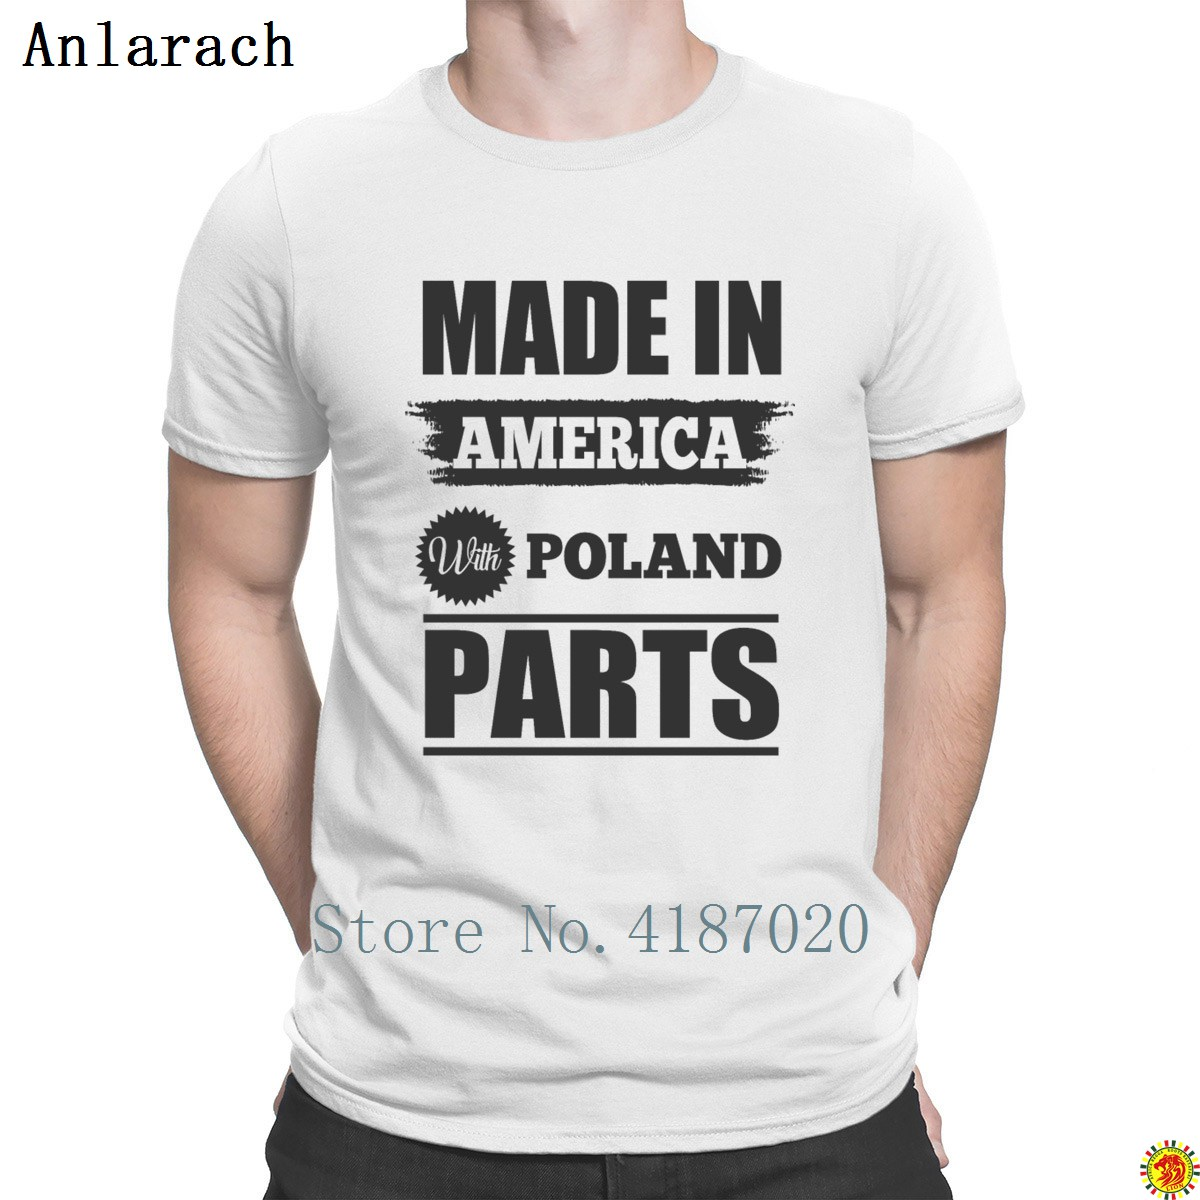 Poland Parts Made In America T Shirt Best Tops Cheap Summer Style Men's T Shirt Knitted Slim Slogan Tee Shirt 100% Cotton image